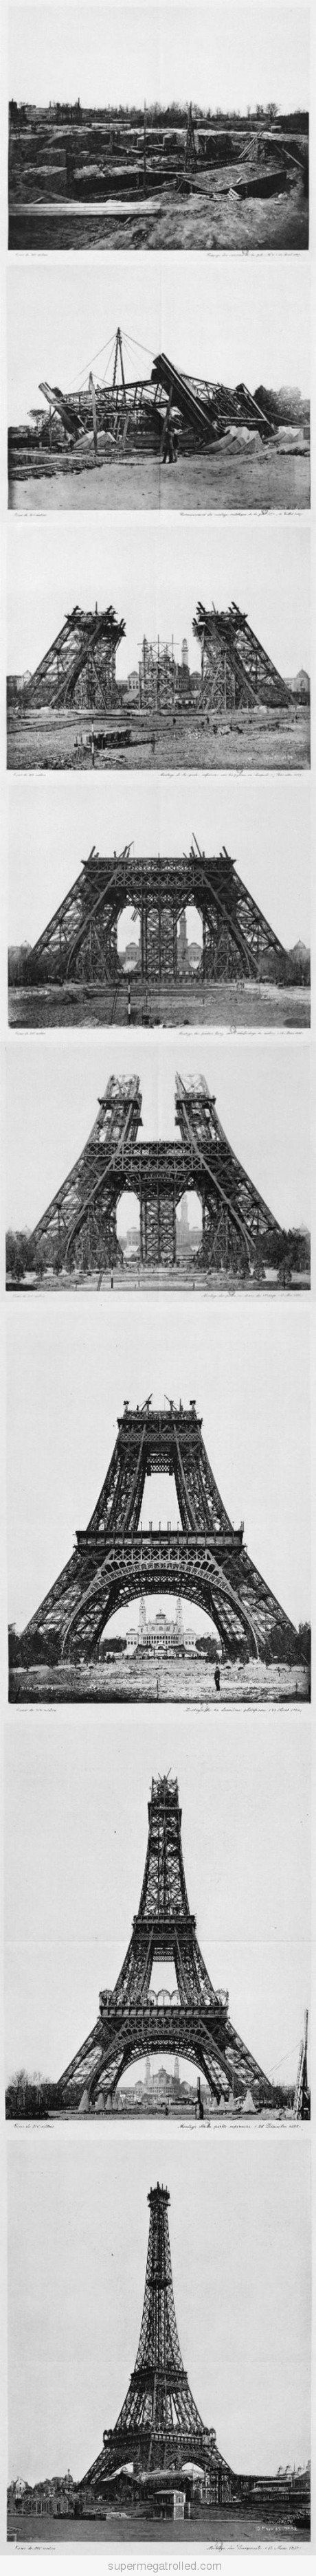 Love these historical shots of the Eiffel Tower being built. #Paris